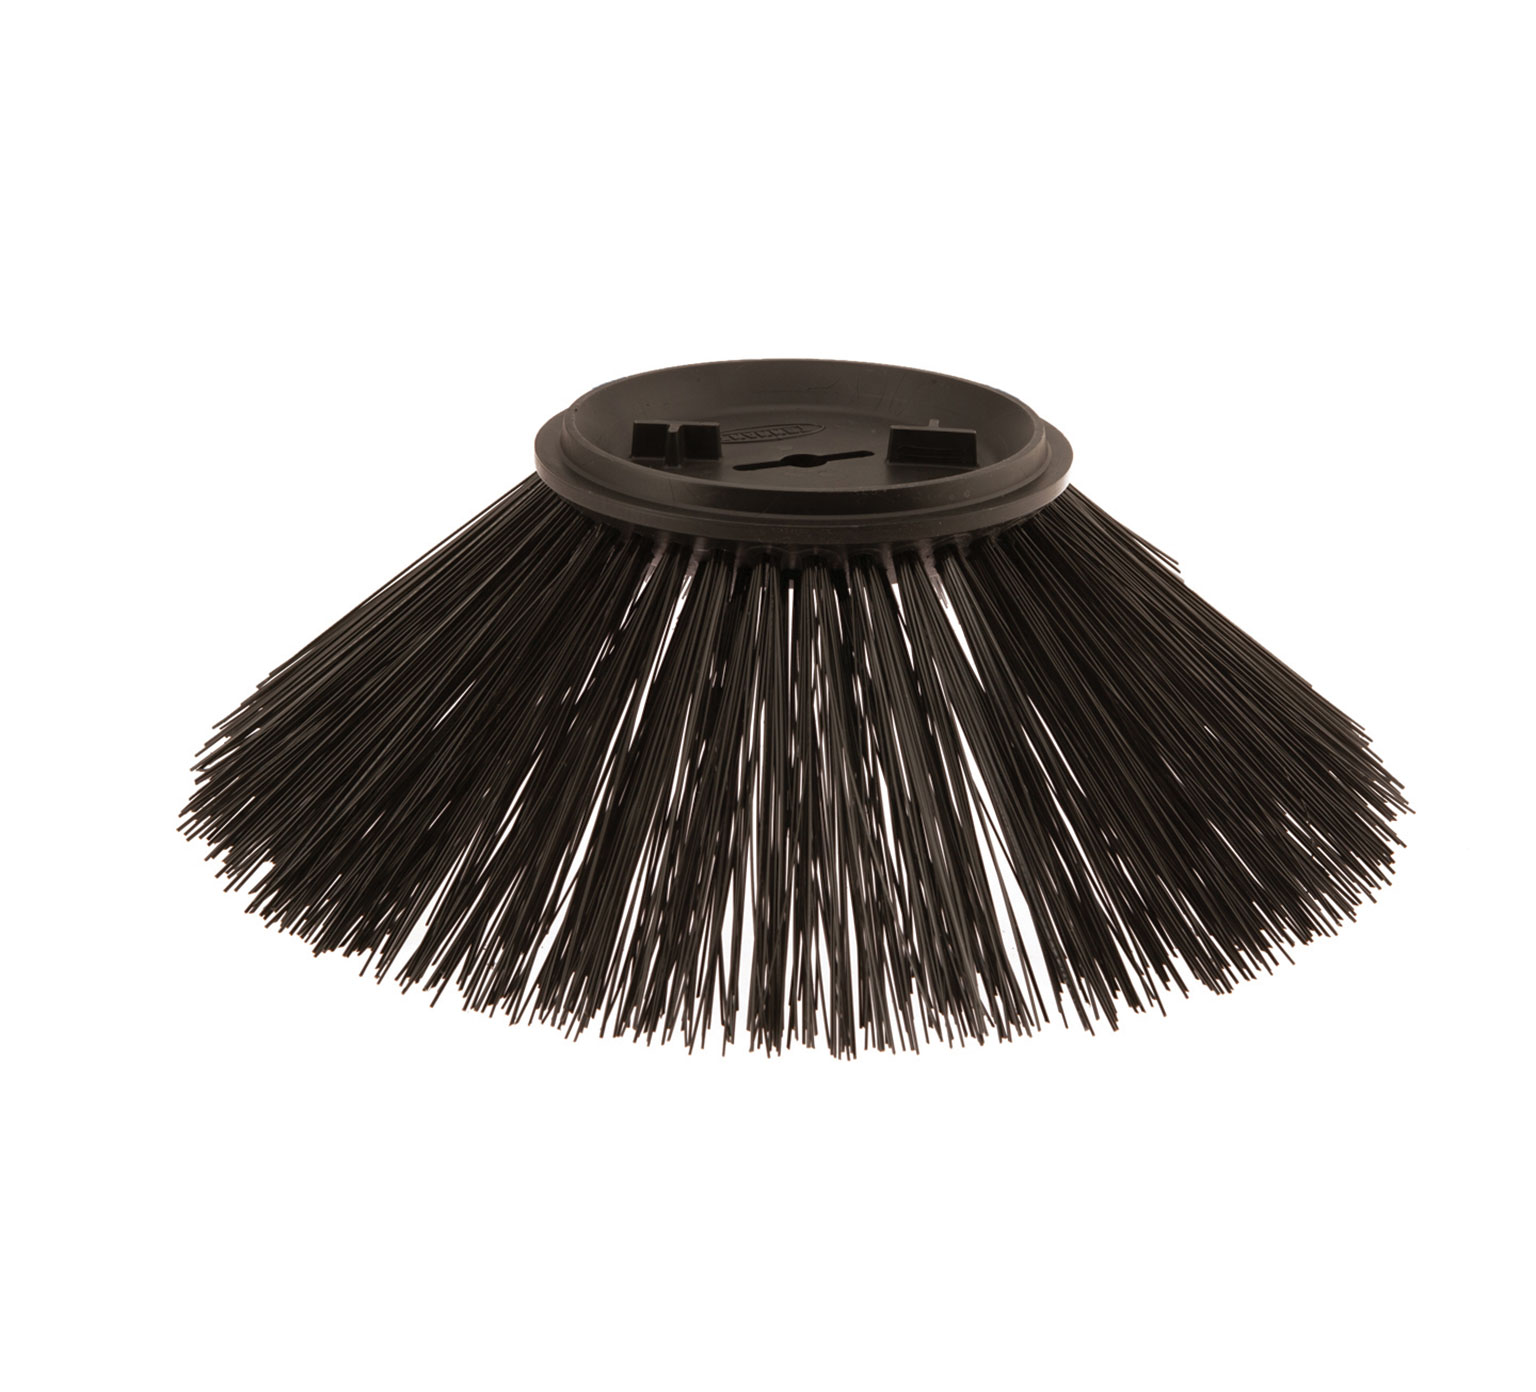 378804 Polypropylene Disk Sweep Brush – 16.5 in / 419 mm alt 1